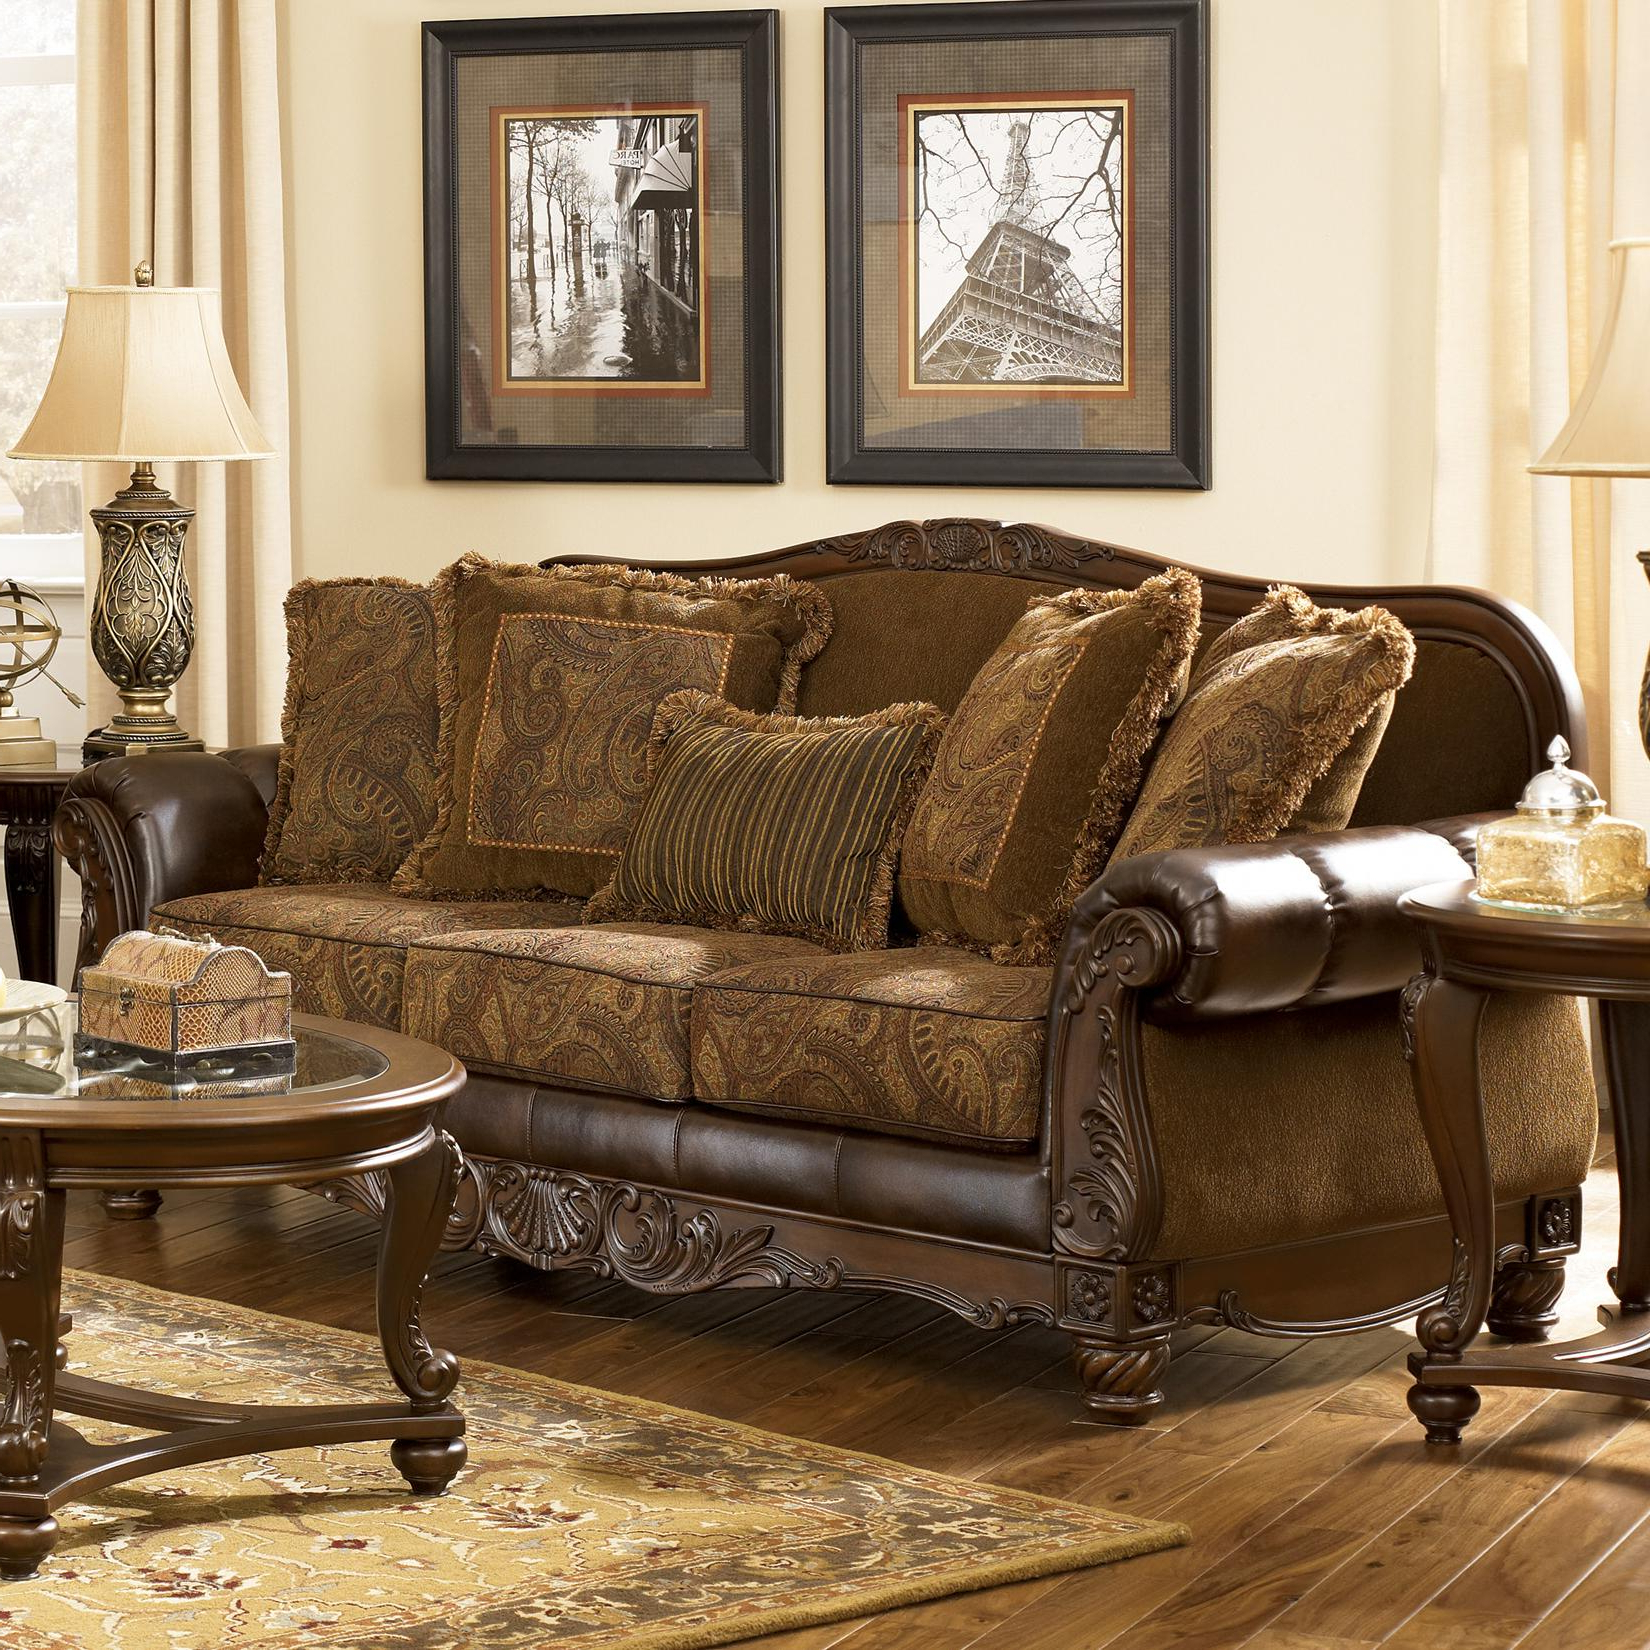 Best And Newest Signature Designashley Fresco Durablend – Antique Traditional Inside Antique Sofa Chairs (View 8 of 20)